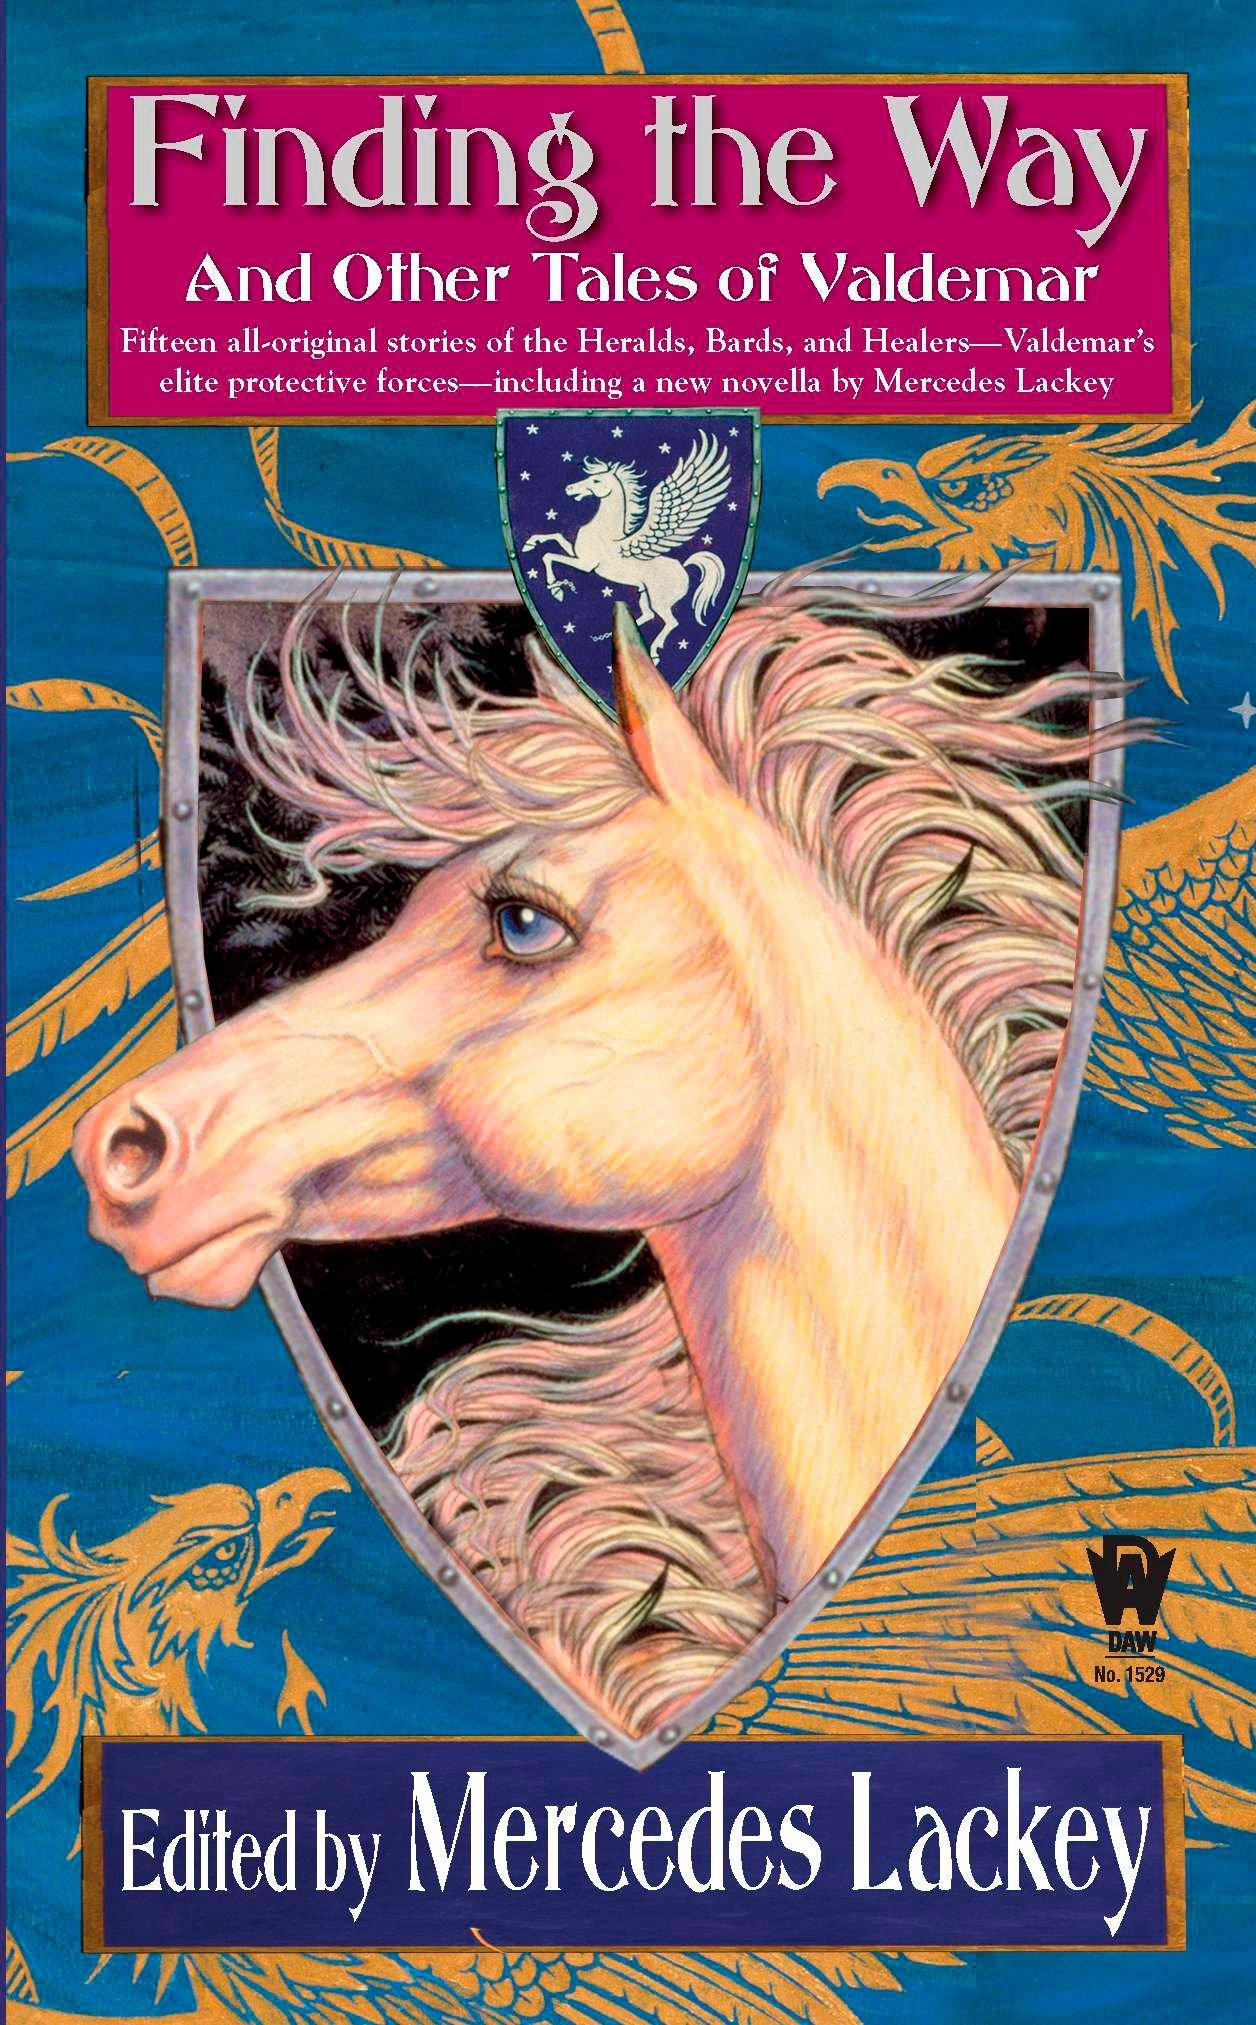 Finding the Way and Other Tales of Valdemar PDF